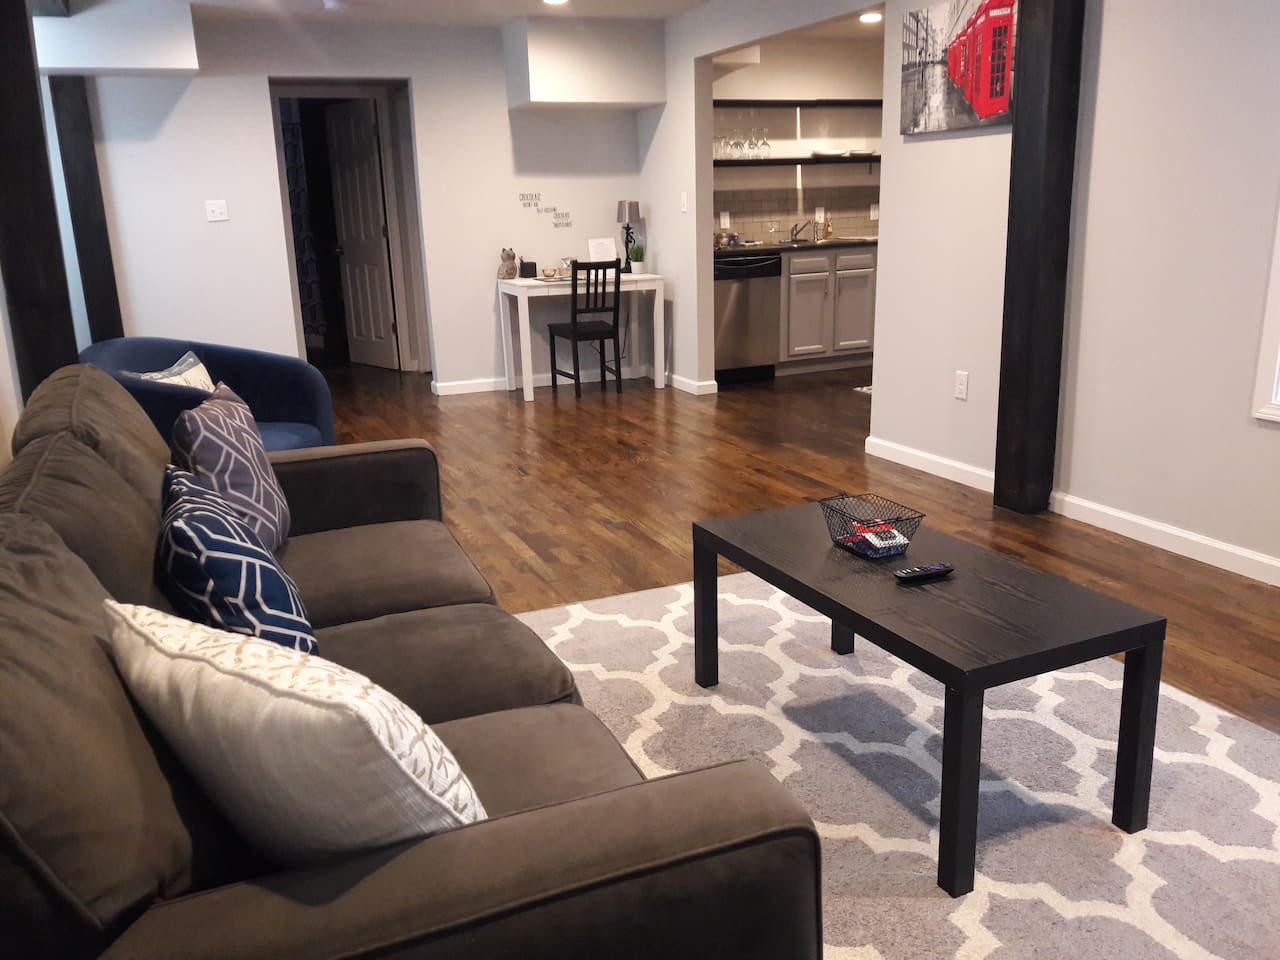 Enjoy an open living space with room to relax, work, cook, and dine.